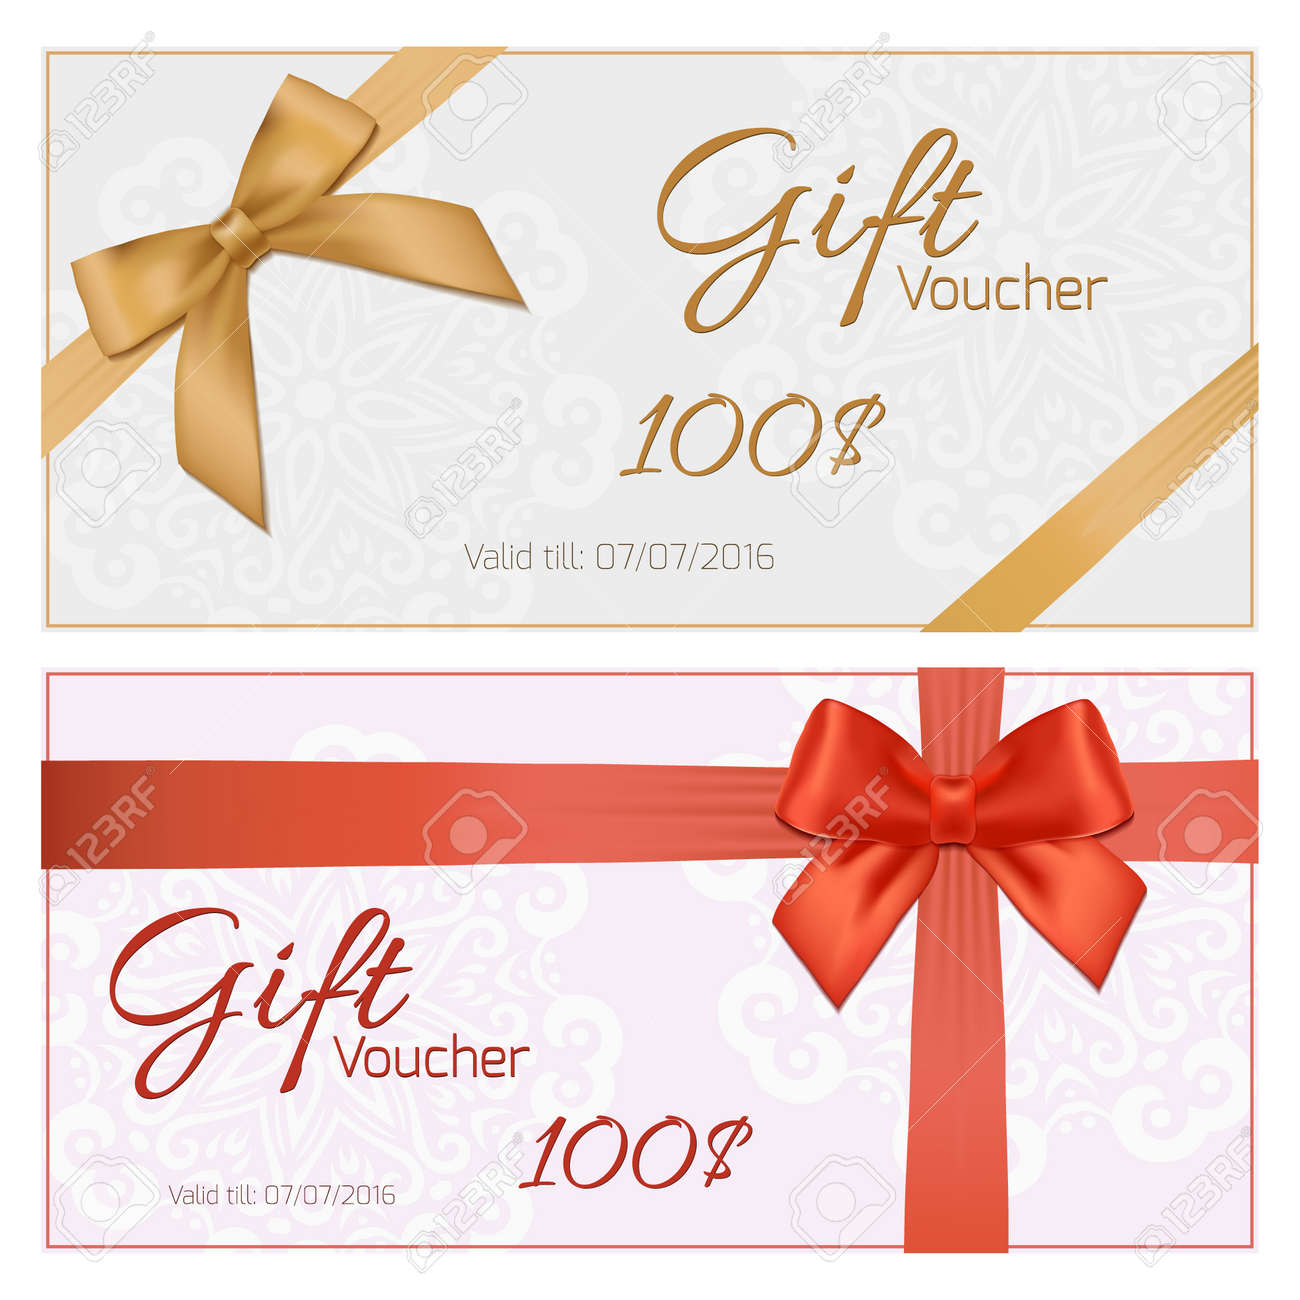 Voucher Template With Floral Pattern, Border, Red And Gold Bow And Ribbons.  Design  Coupon Voucher Template